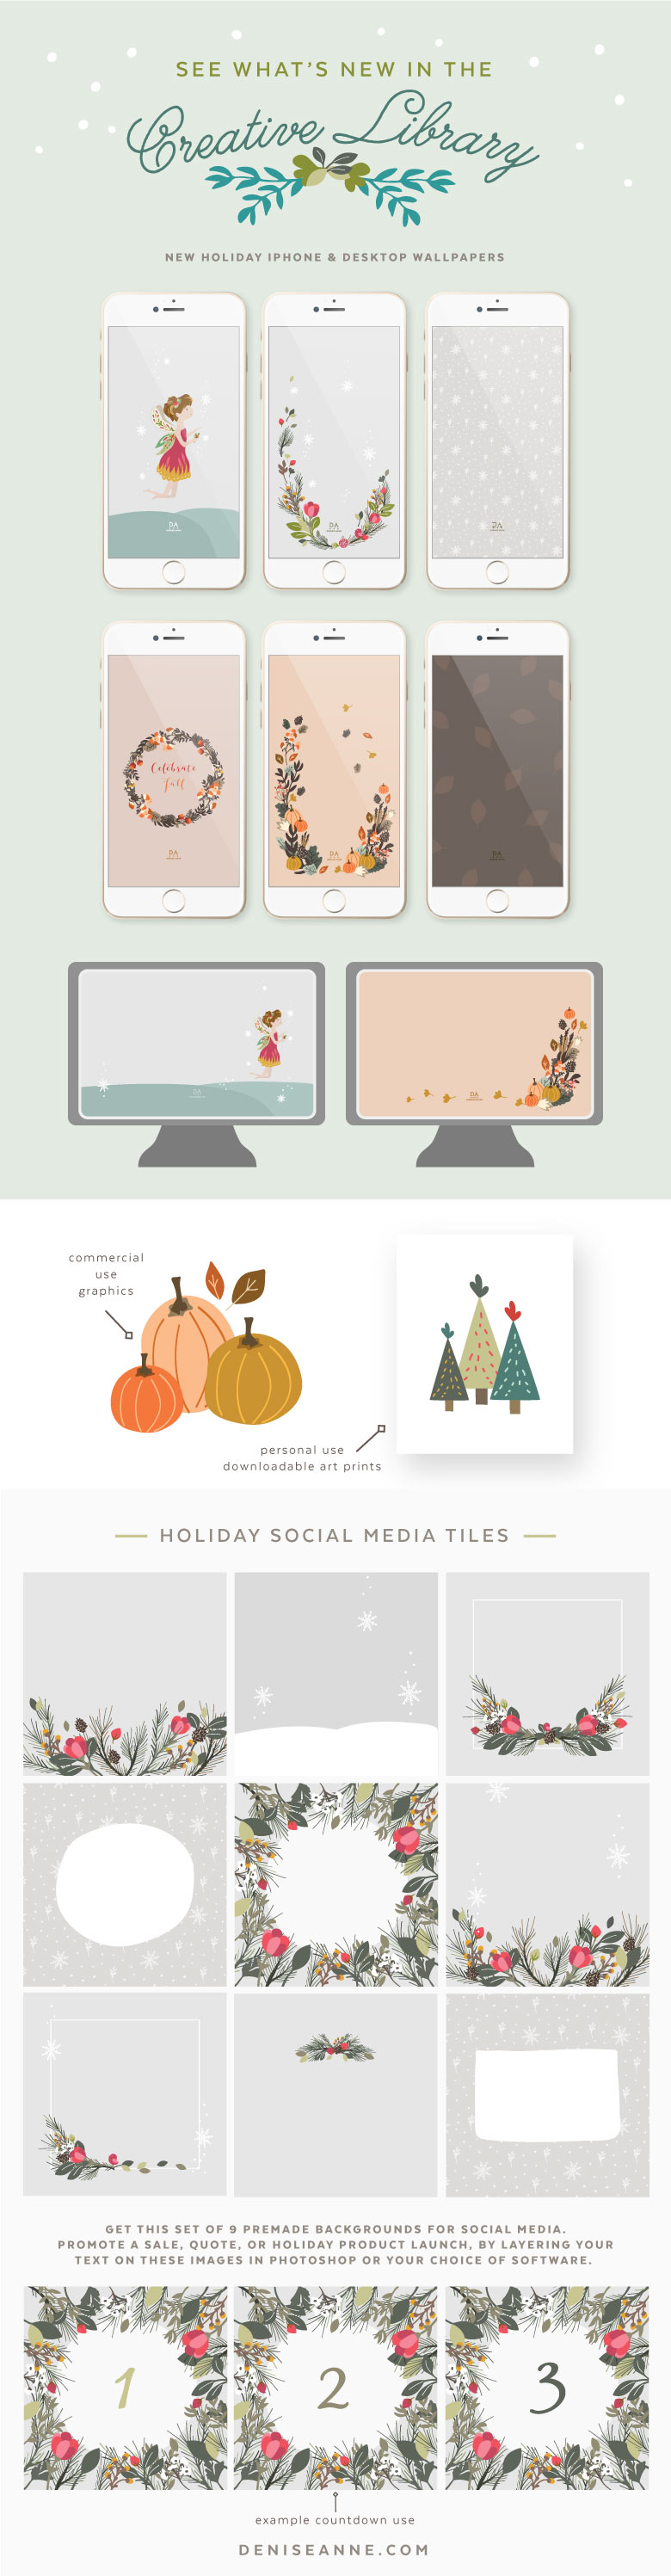 New holiday desktop and iphone wallpapers, art prints,  graphics, and social media images are available free in my creative library.